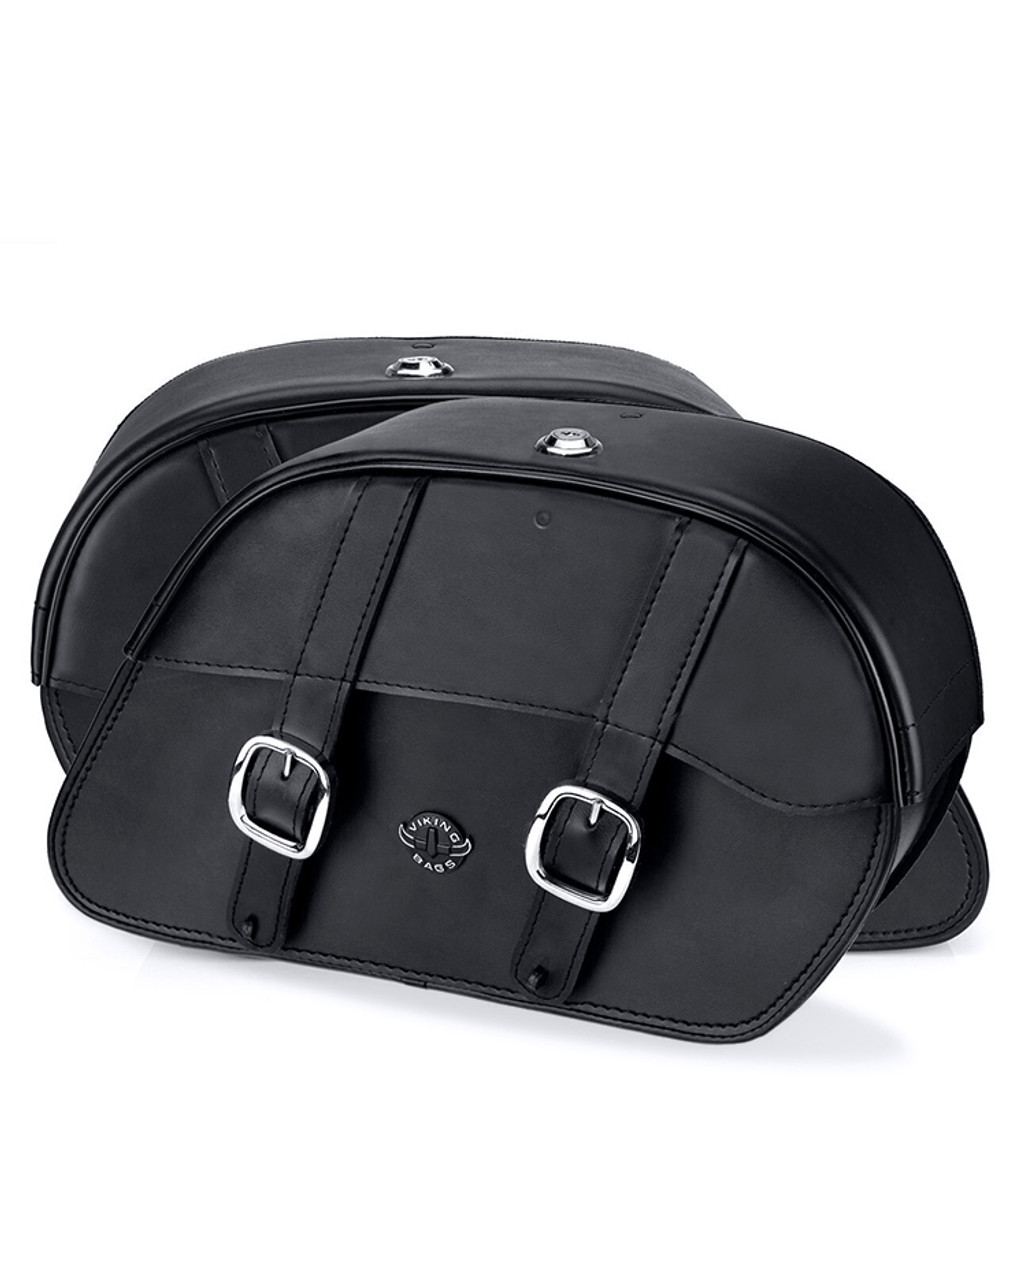 VikingBags Skarner Large Double Strap Leather Motorcycle Saddlebags For Harley Softail Night Train FXSTB Both Bags View